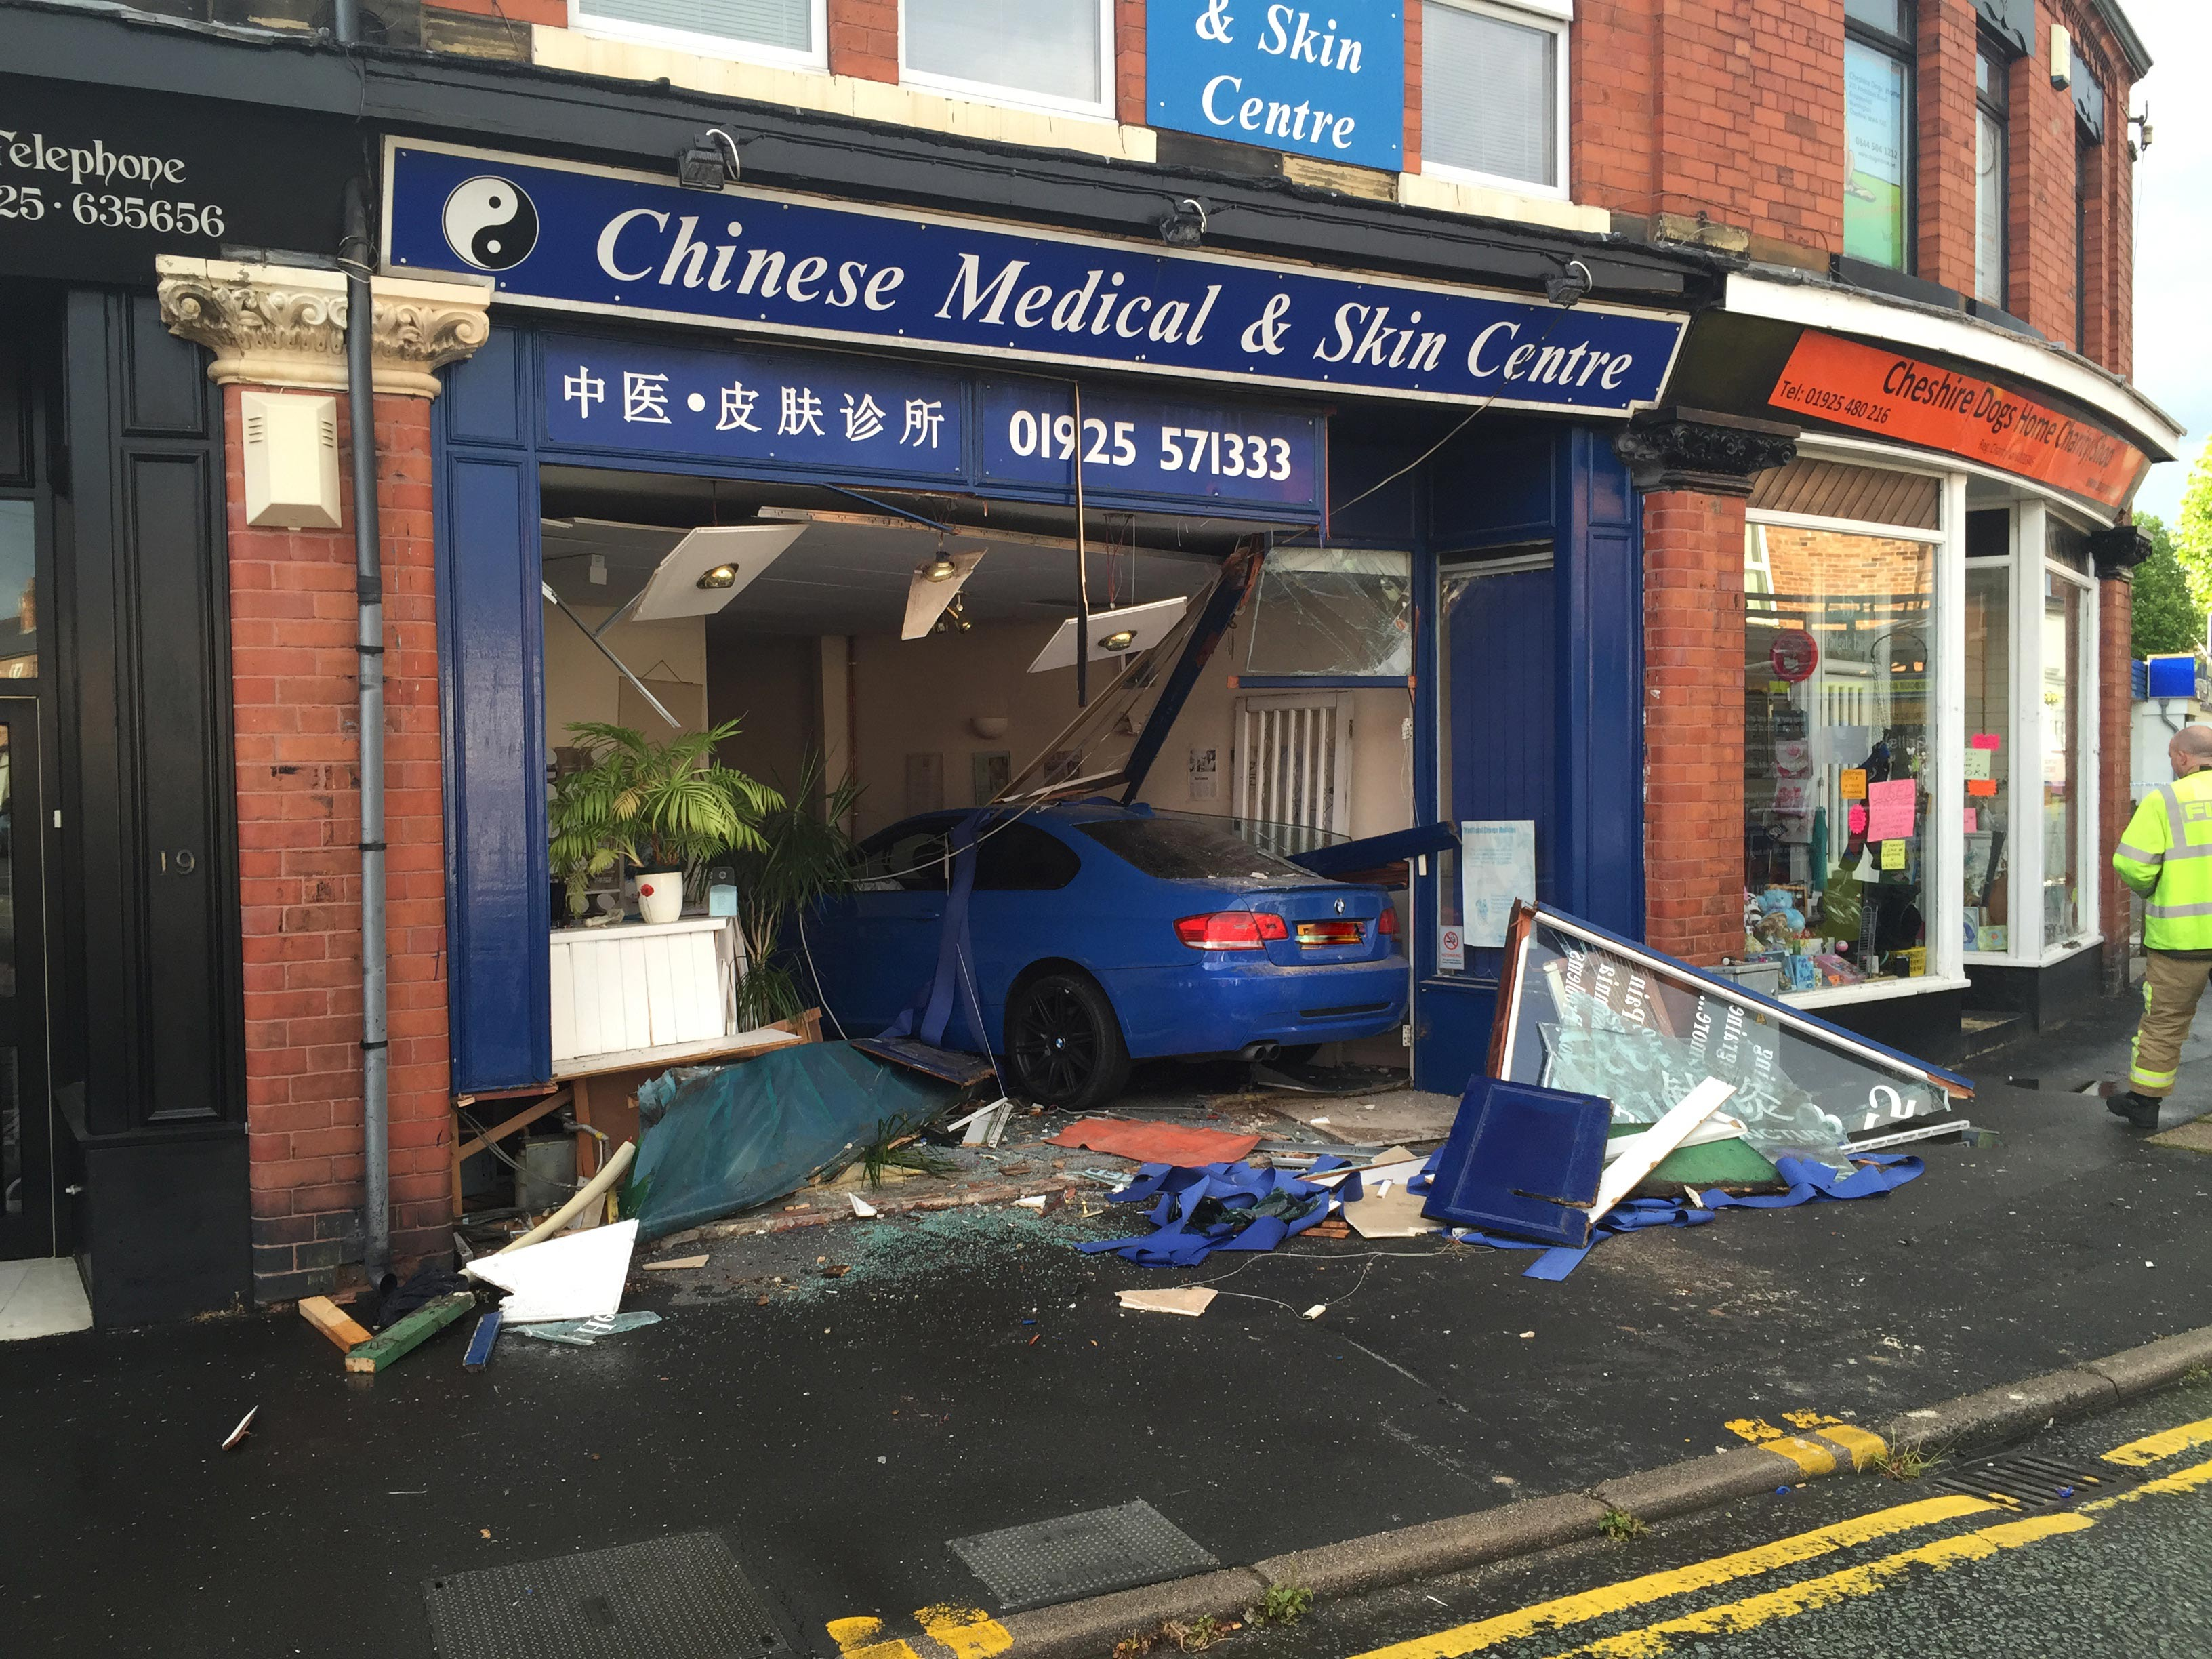 car collides with building in warrington. Black Bedroom Furniture Sets. Home Design Ideas